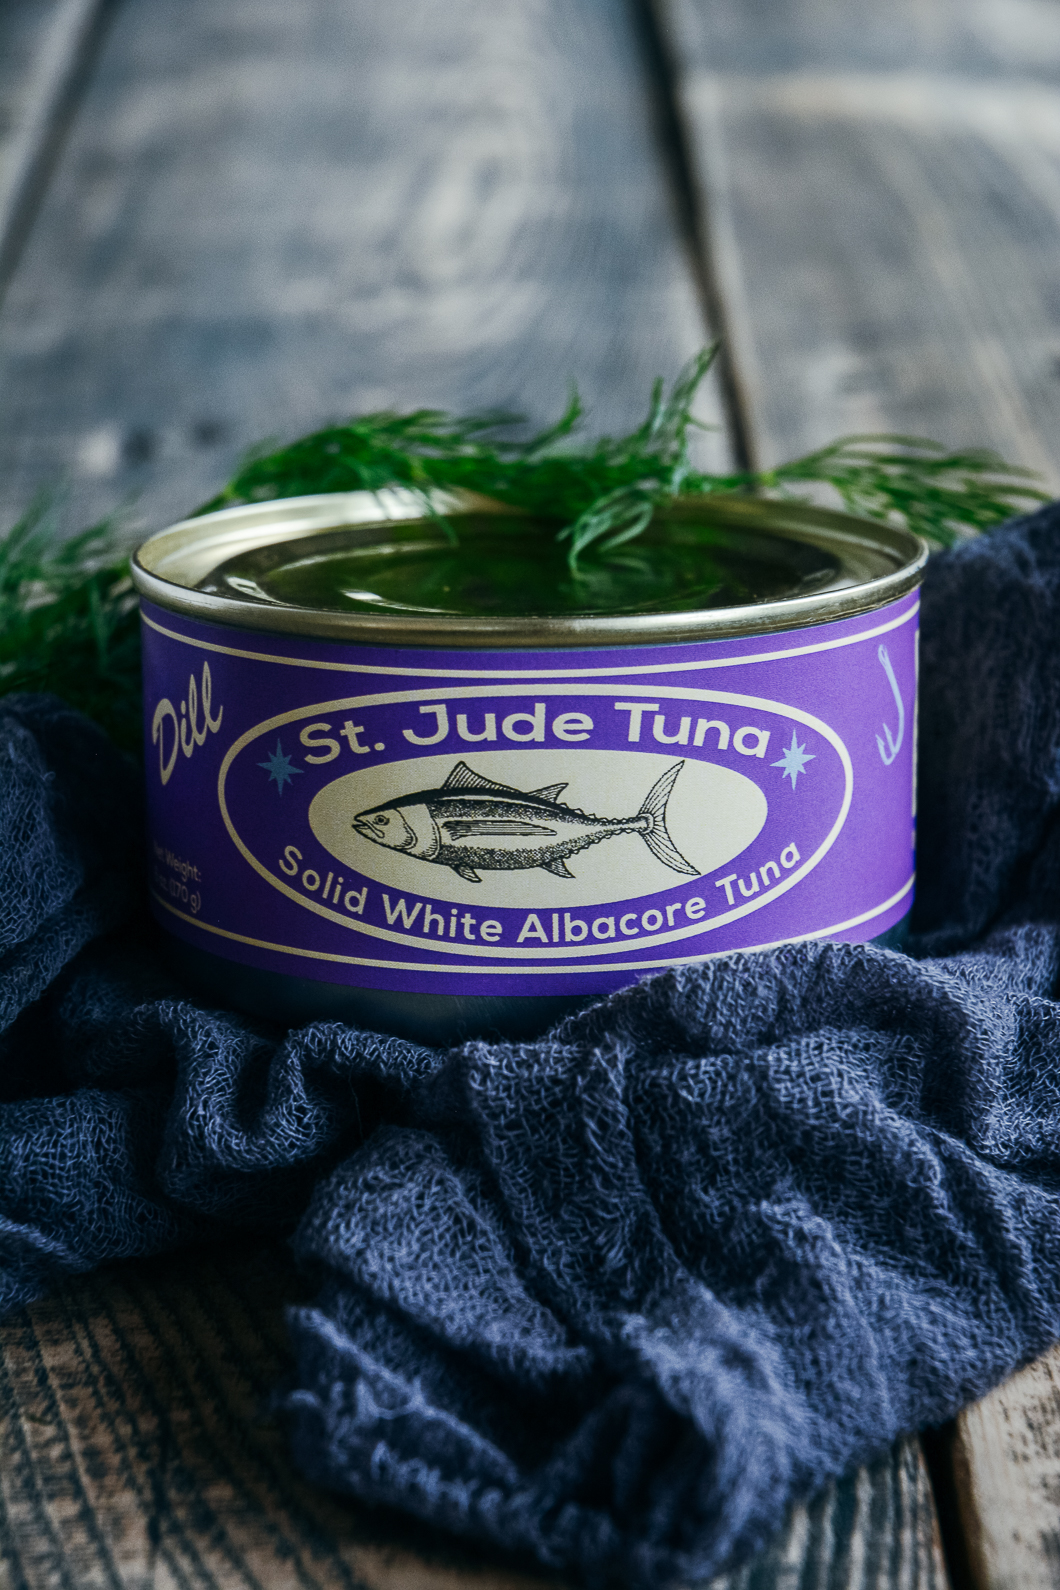 St. Jude canned tuna on table